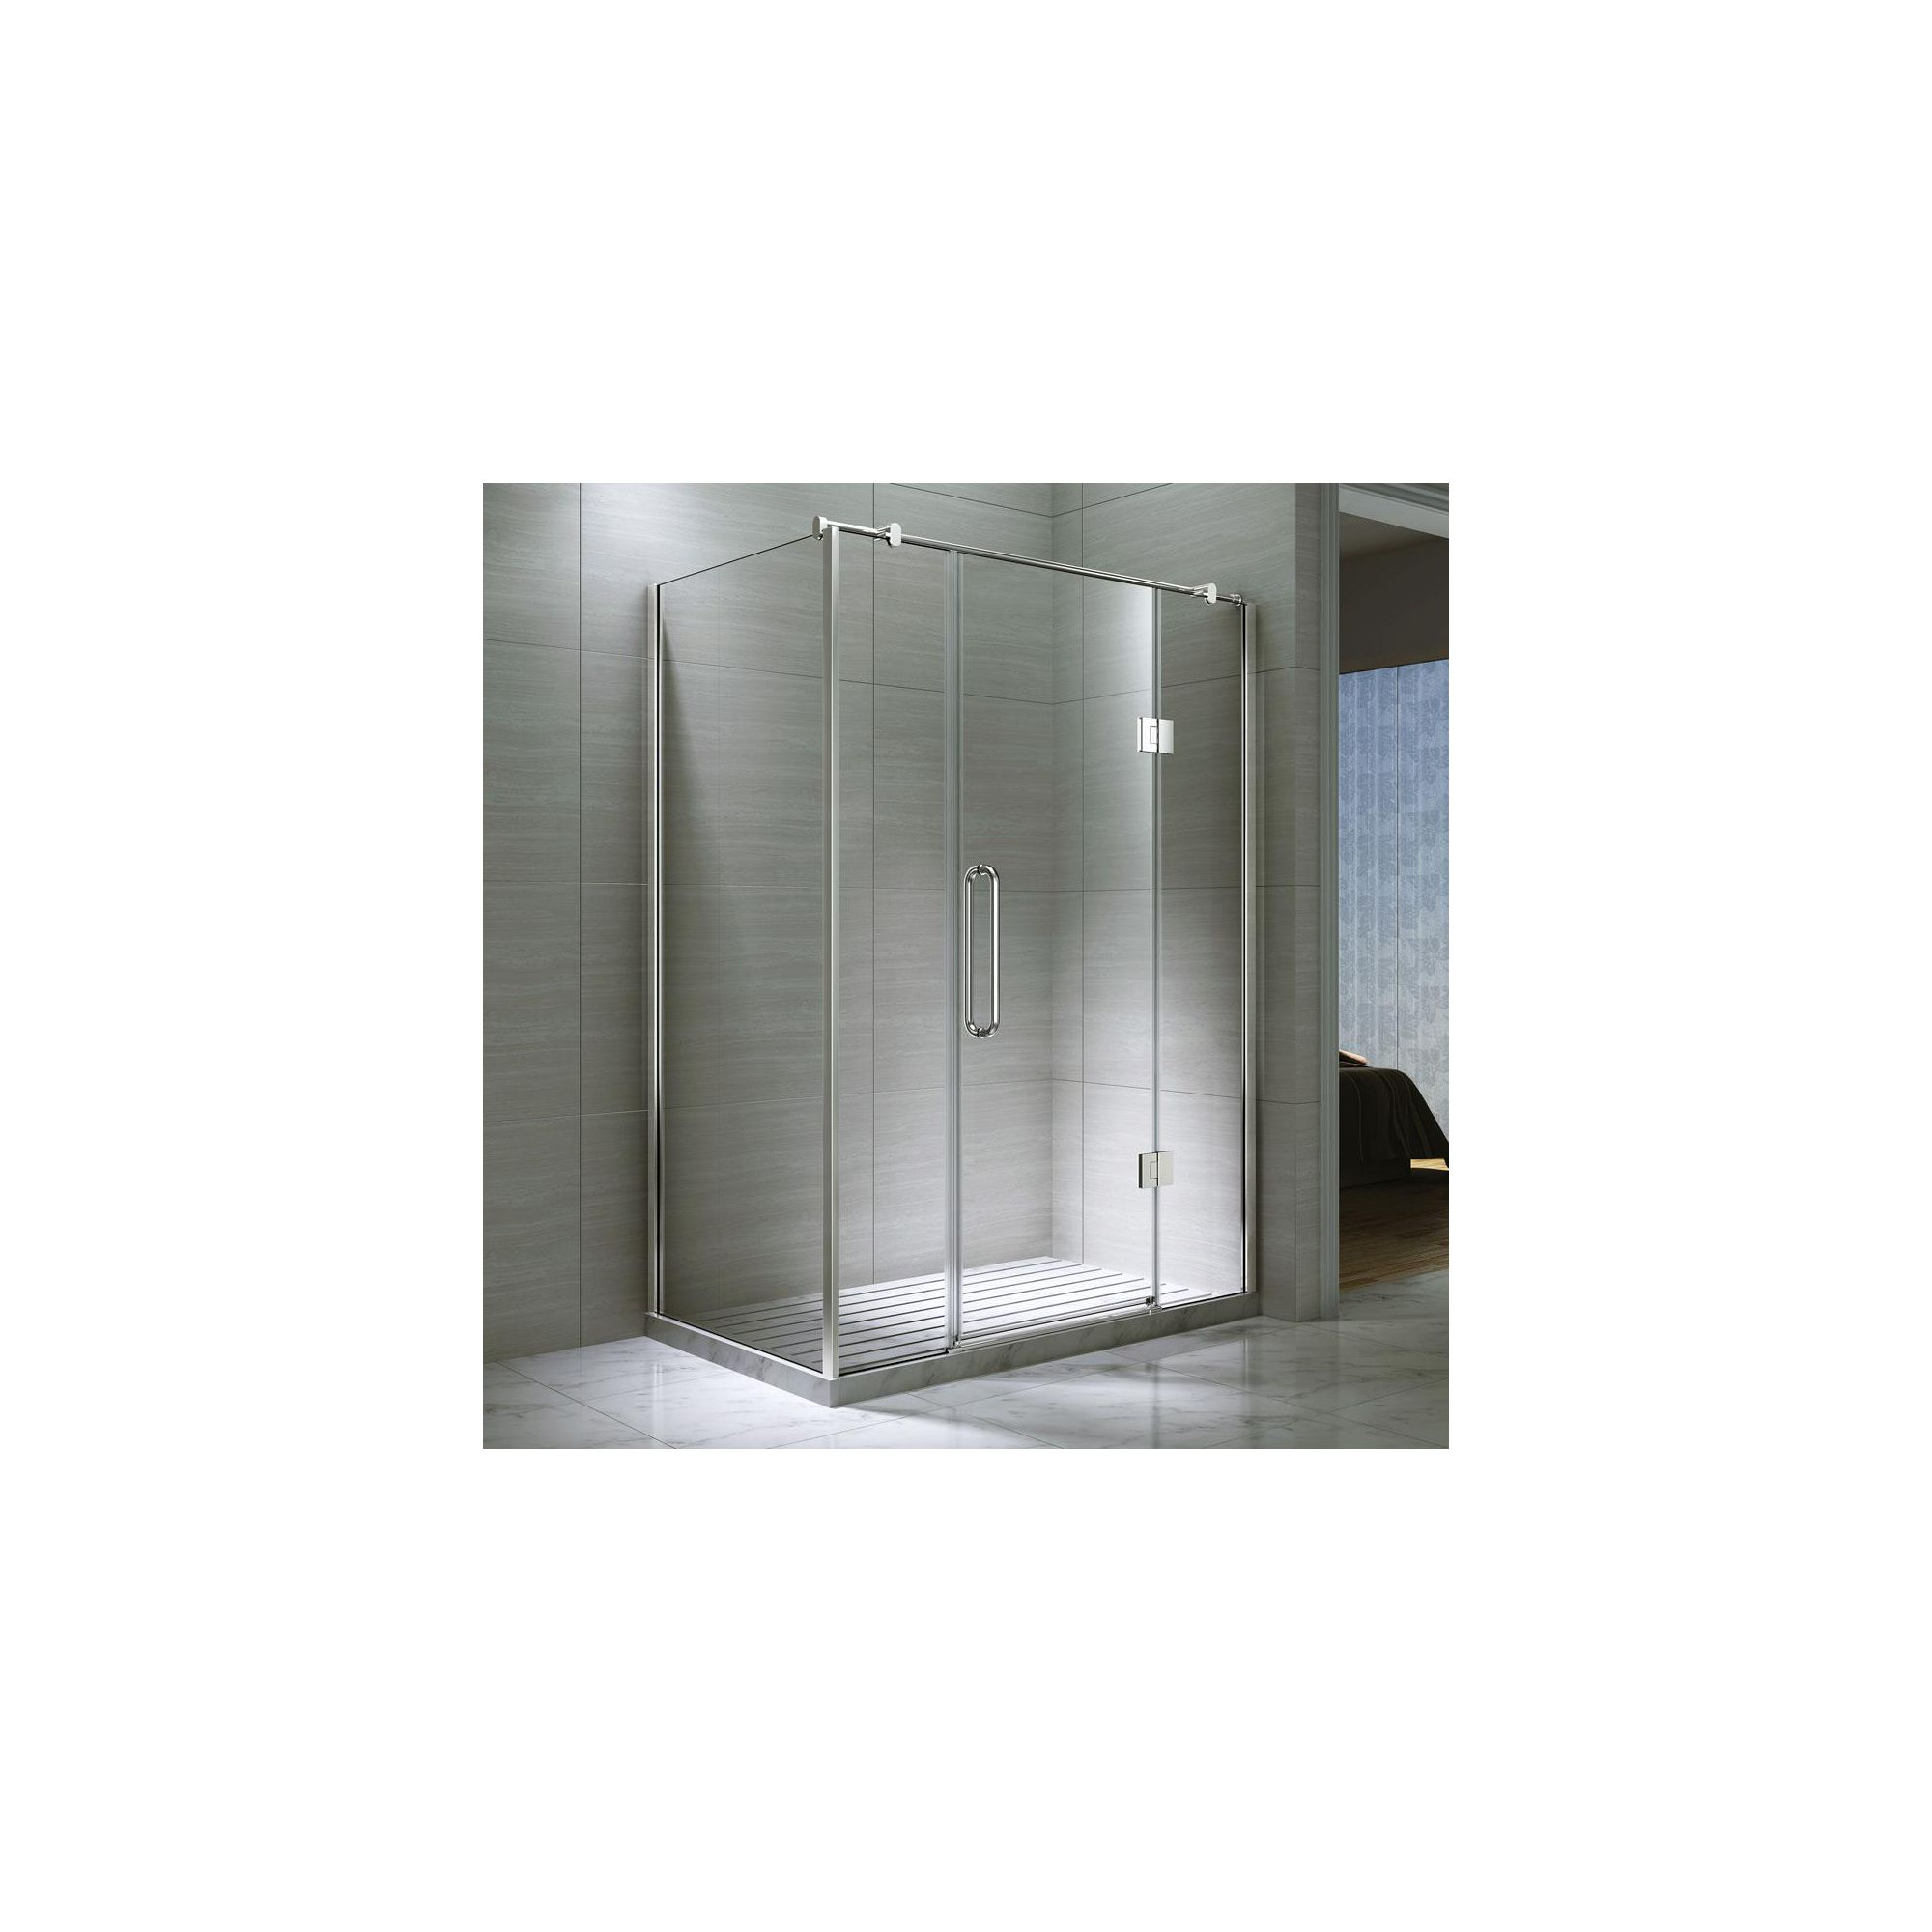 Desire Ten Double Inline Hinged Shower Door with Side Panel, 1400mm x 800mm, Semi-Frameless, 10mm Glass at Tesco Direct